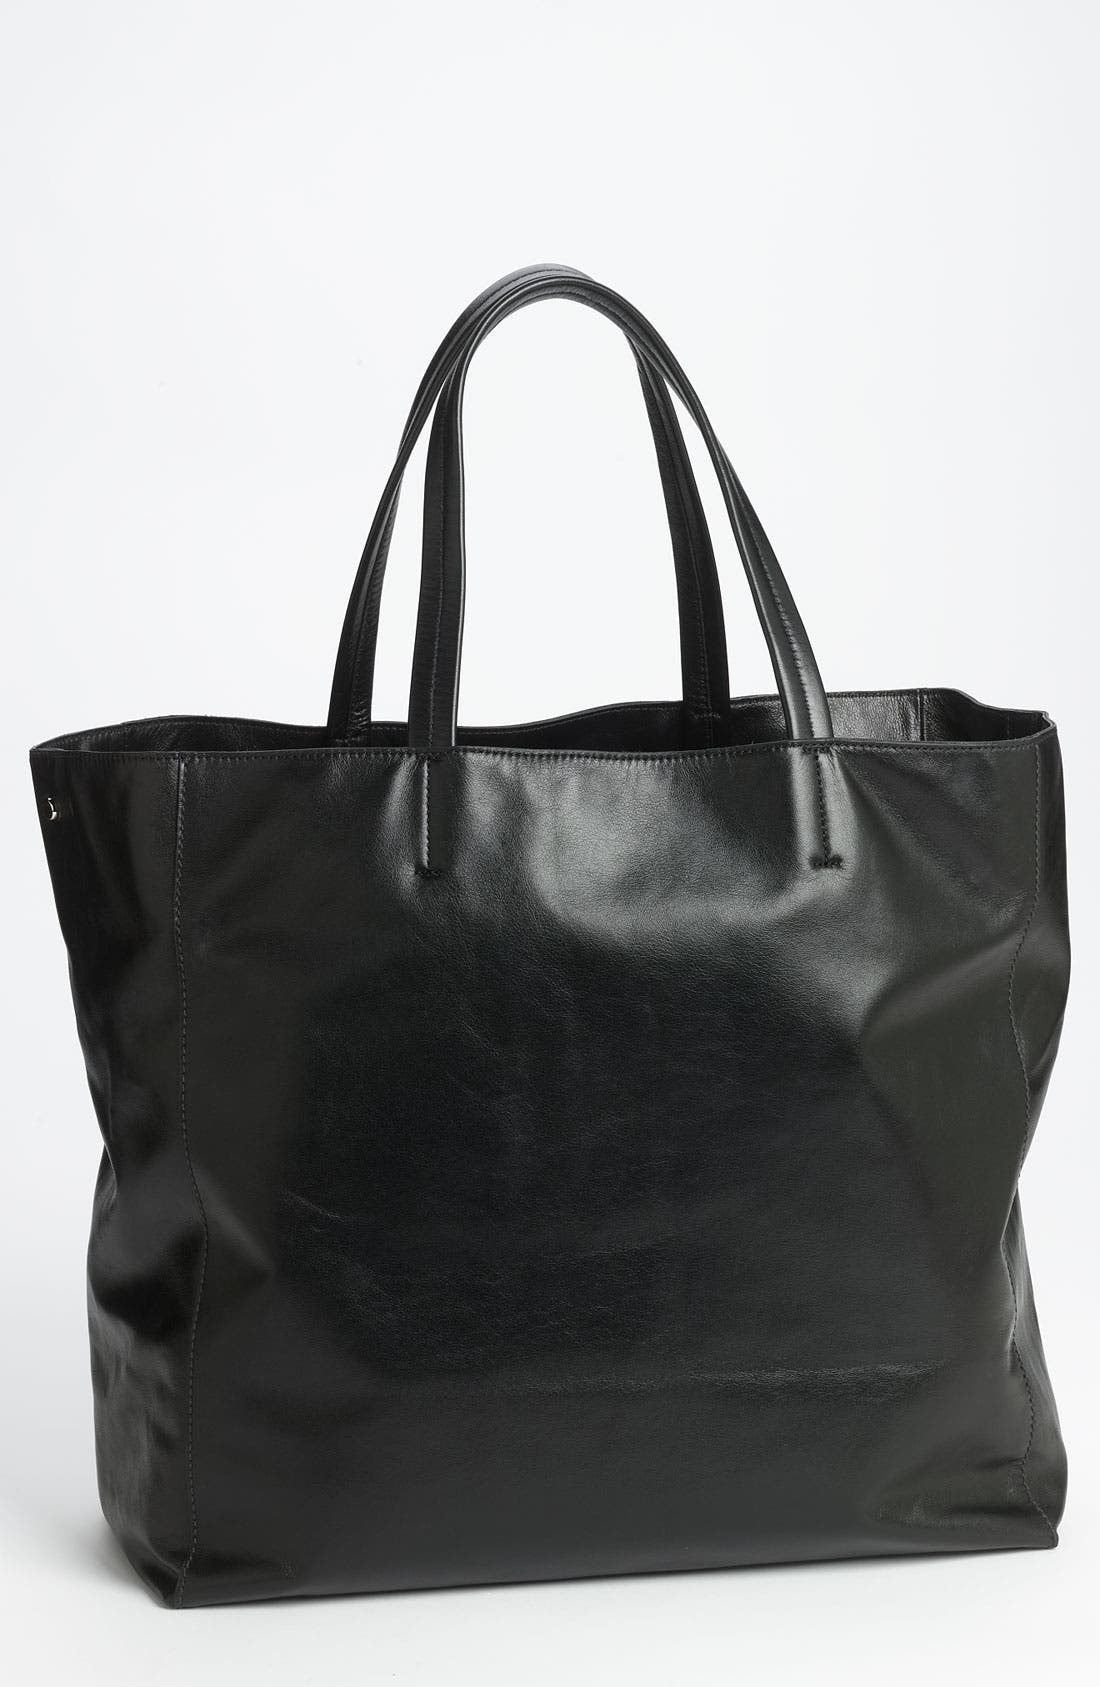 Main Image - Lafayette 148 New York 'Anna' Leather Tote